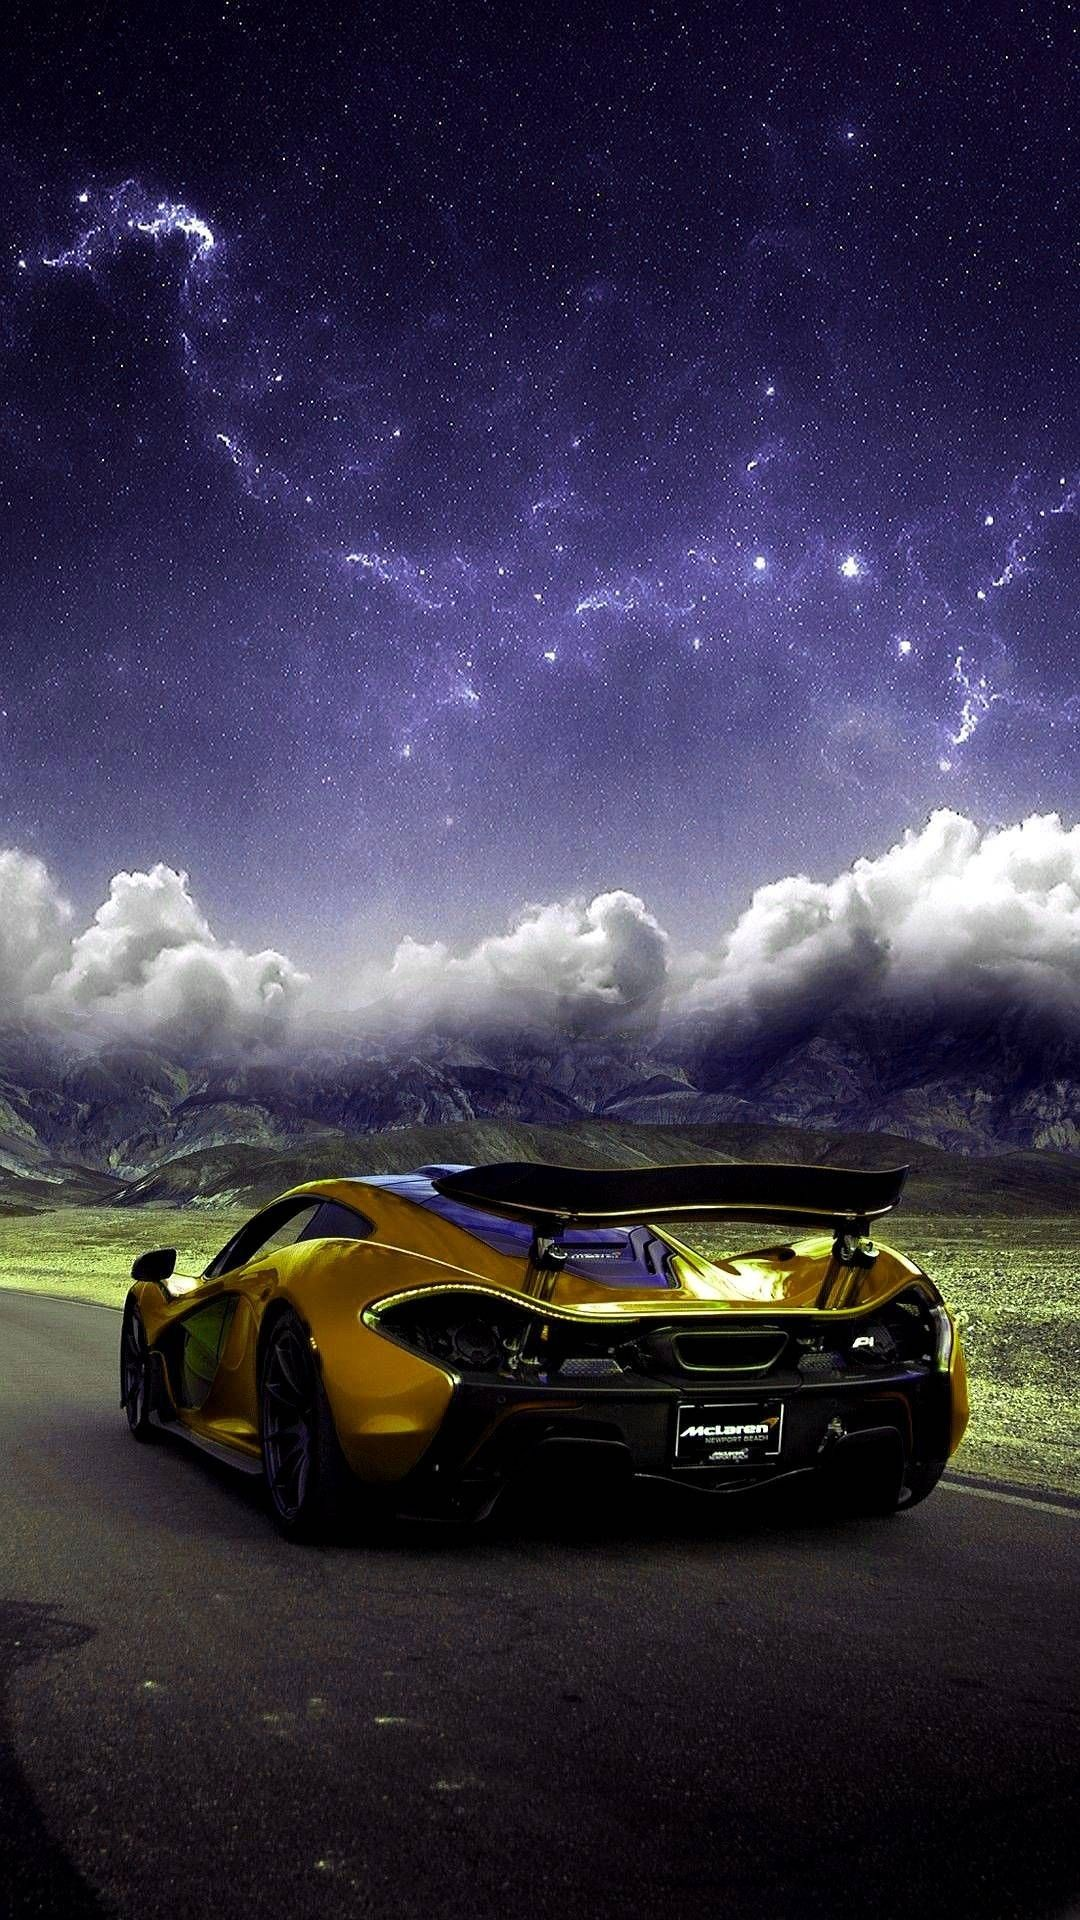 Rohit Tech Official Blog Page In 2020 Car Iphone Wallpaper Car